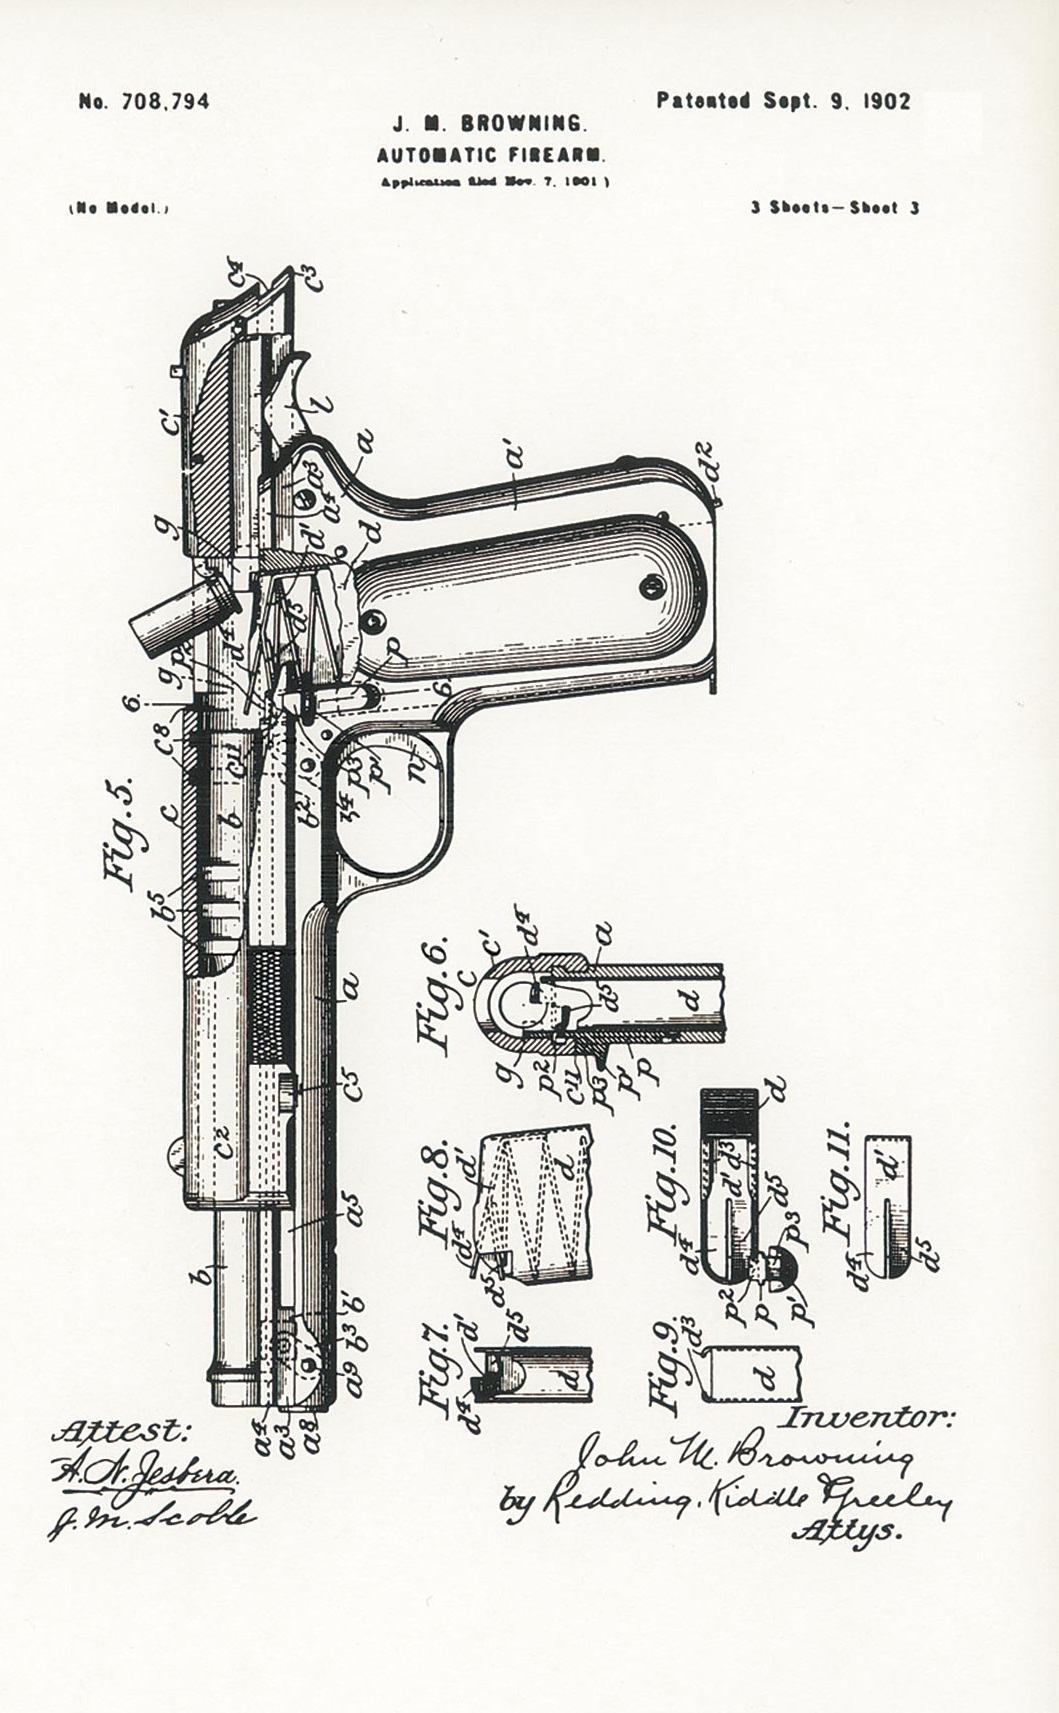 Browning's patent 708794 of 9 September 1902